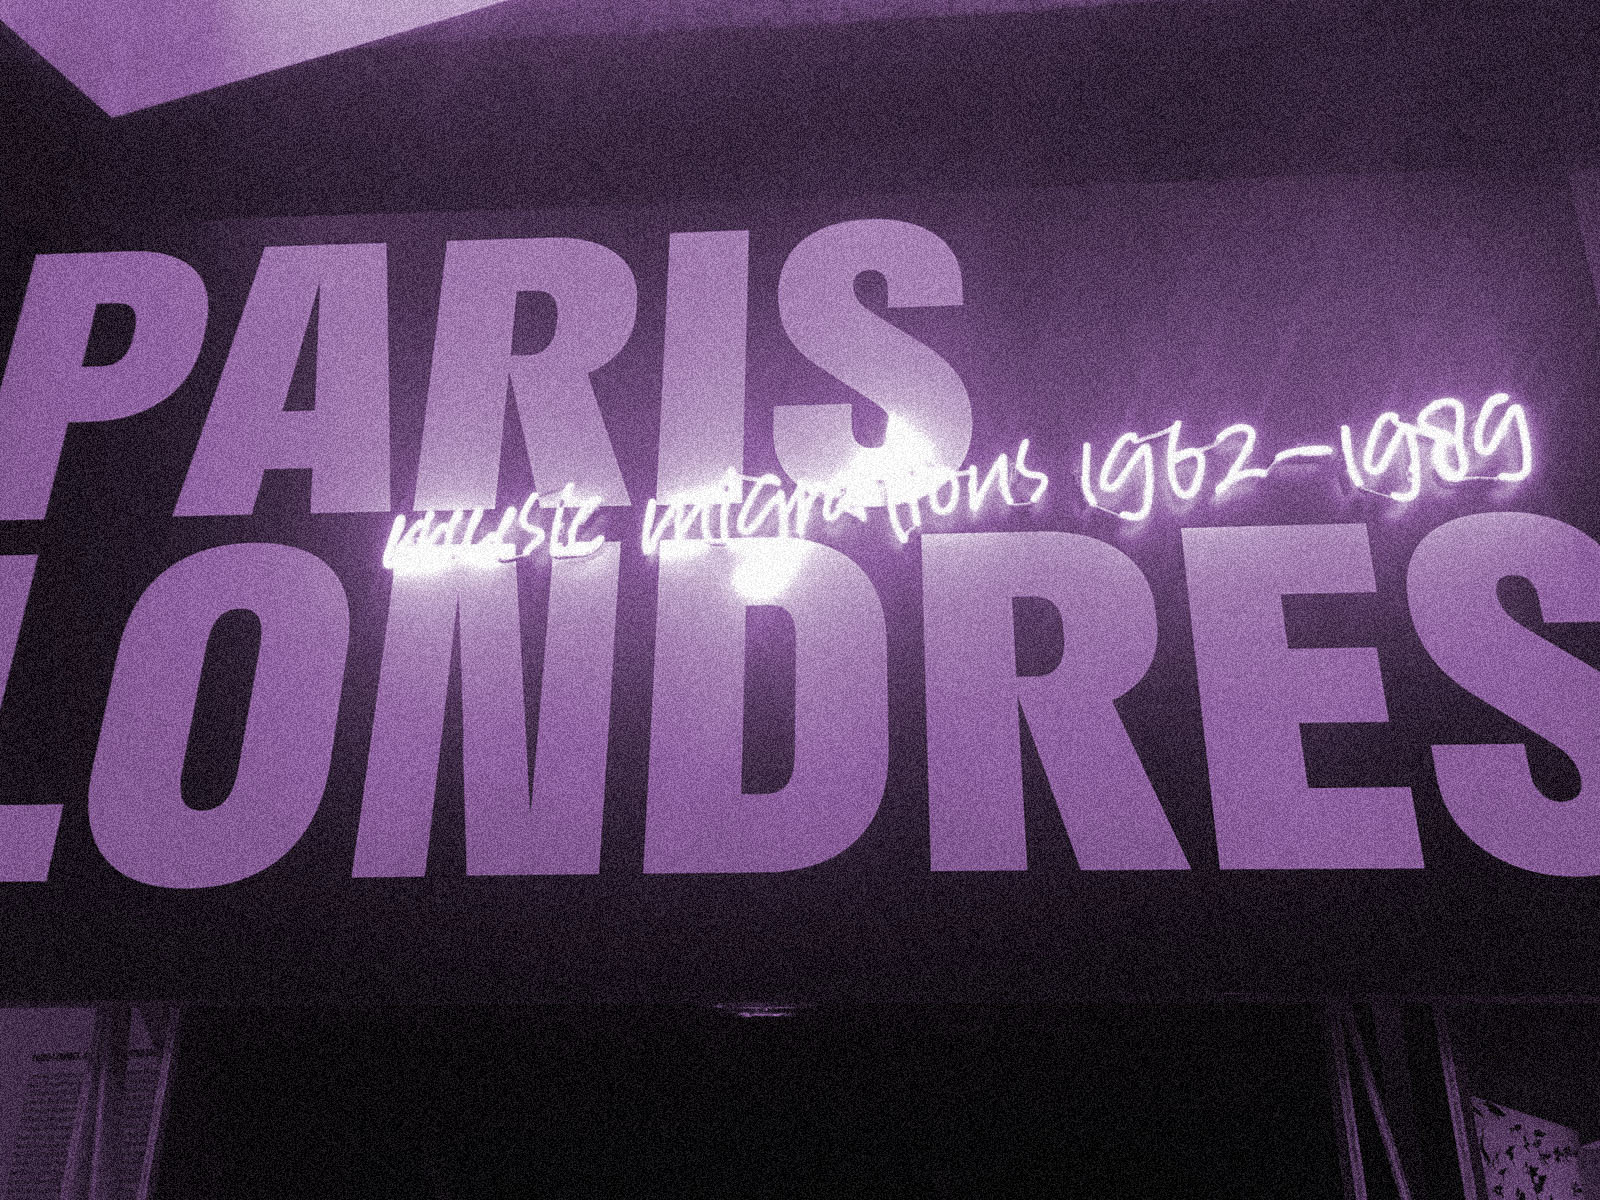 Exposition Paris – Londres. Music Migrations (1962 – 1989)3 min de lecture